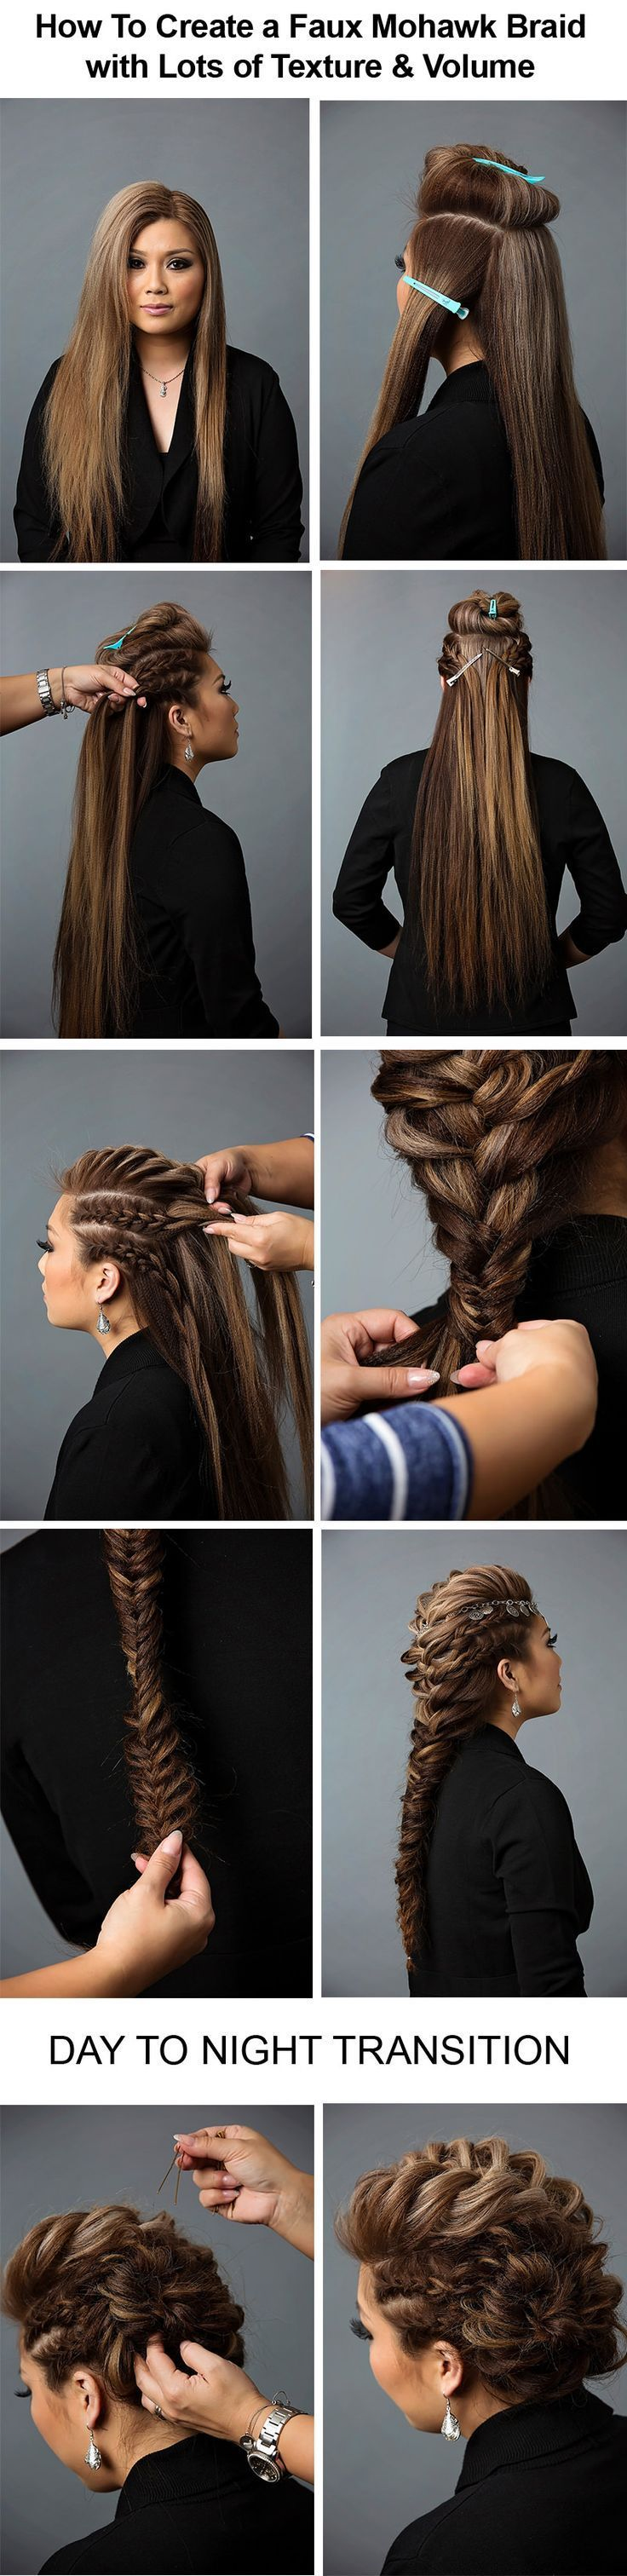 nice Day to Night Hairstyle | Mohawk Braid into Fishtail Bun... by http://www.danaz-haircuts.xyz/hair-tutorials/day-to-night-hairstyle-mohawk-braid-into-fishtail-bun-2/